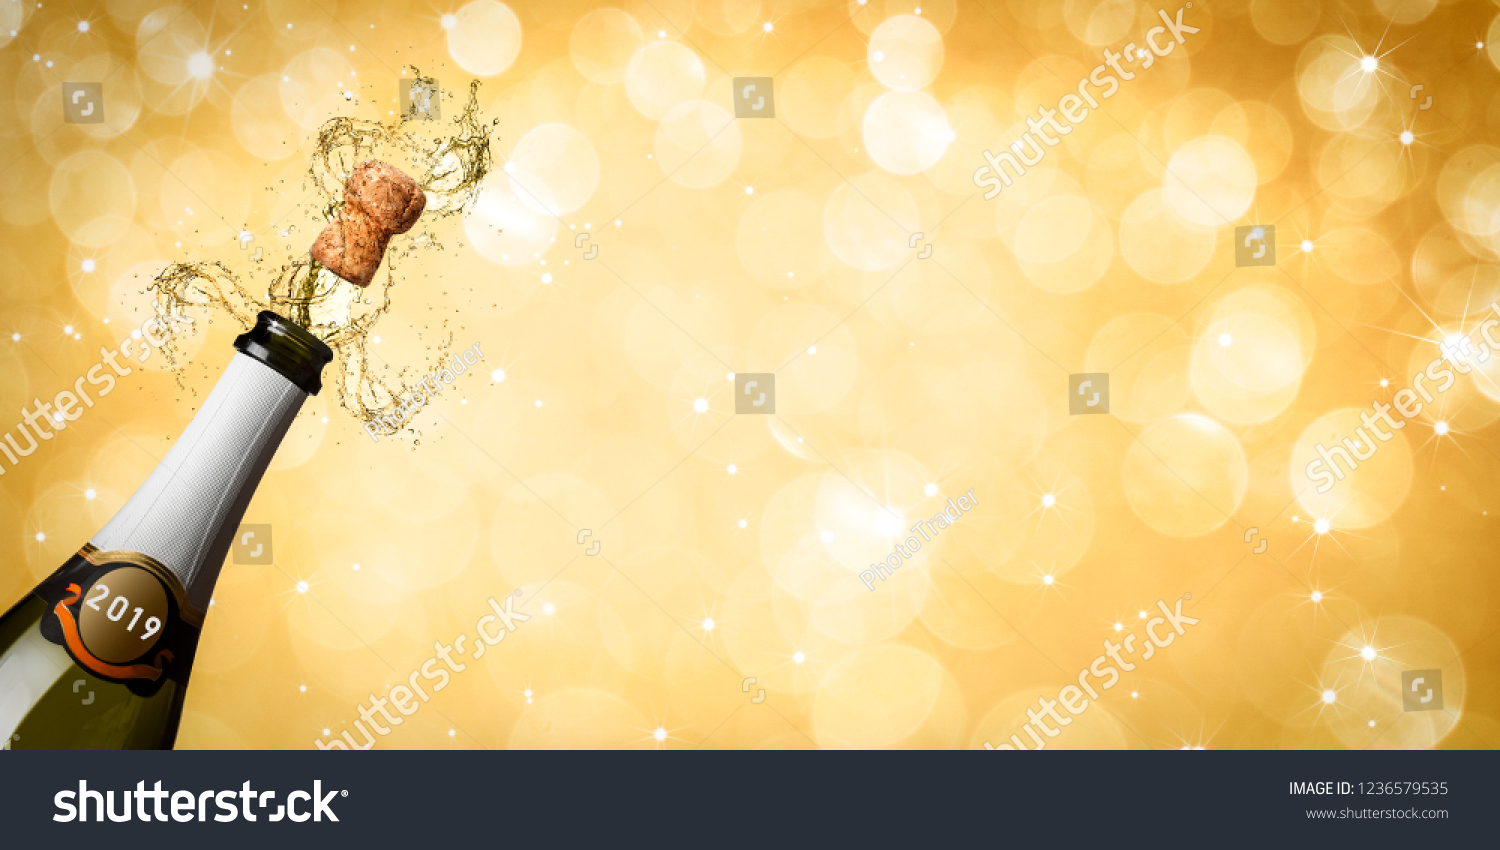 new year eve 2019 banner champagne explosion golden background